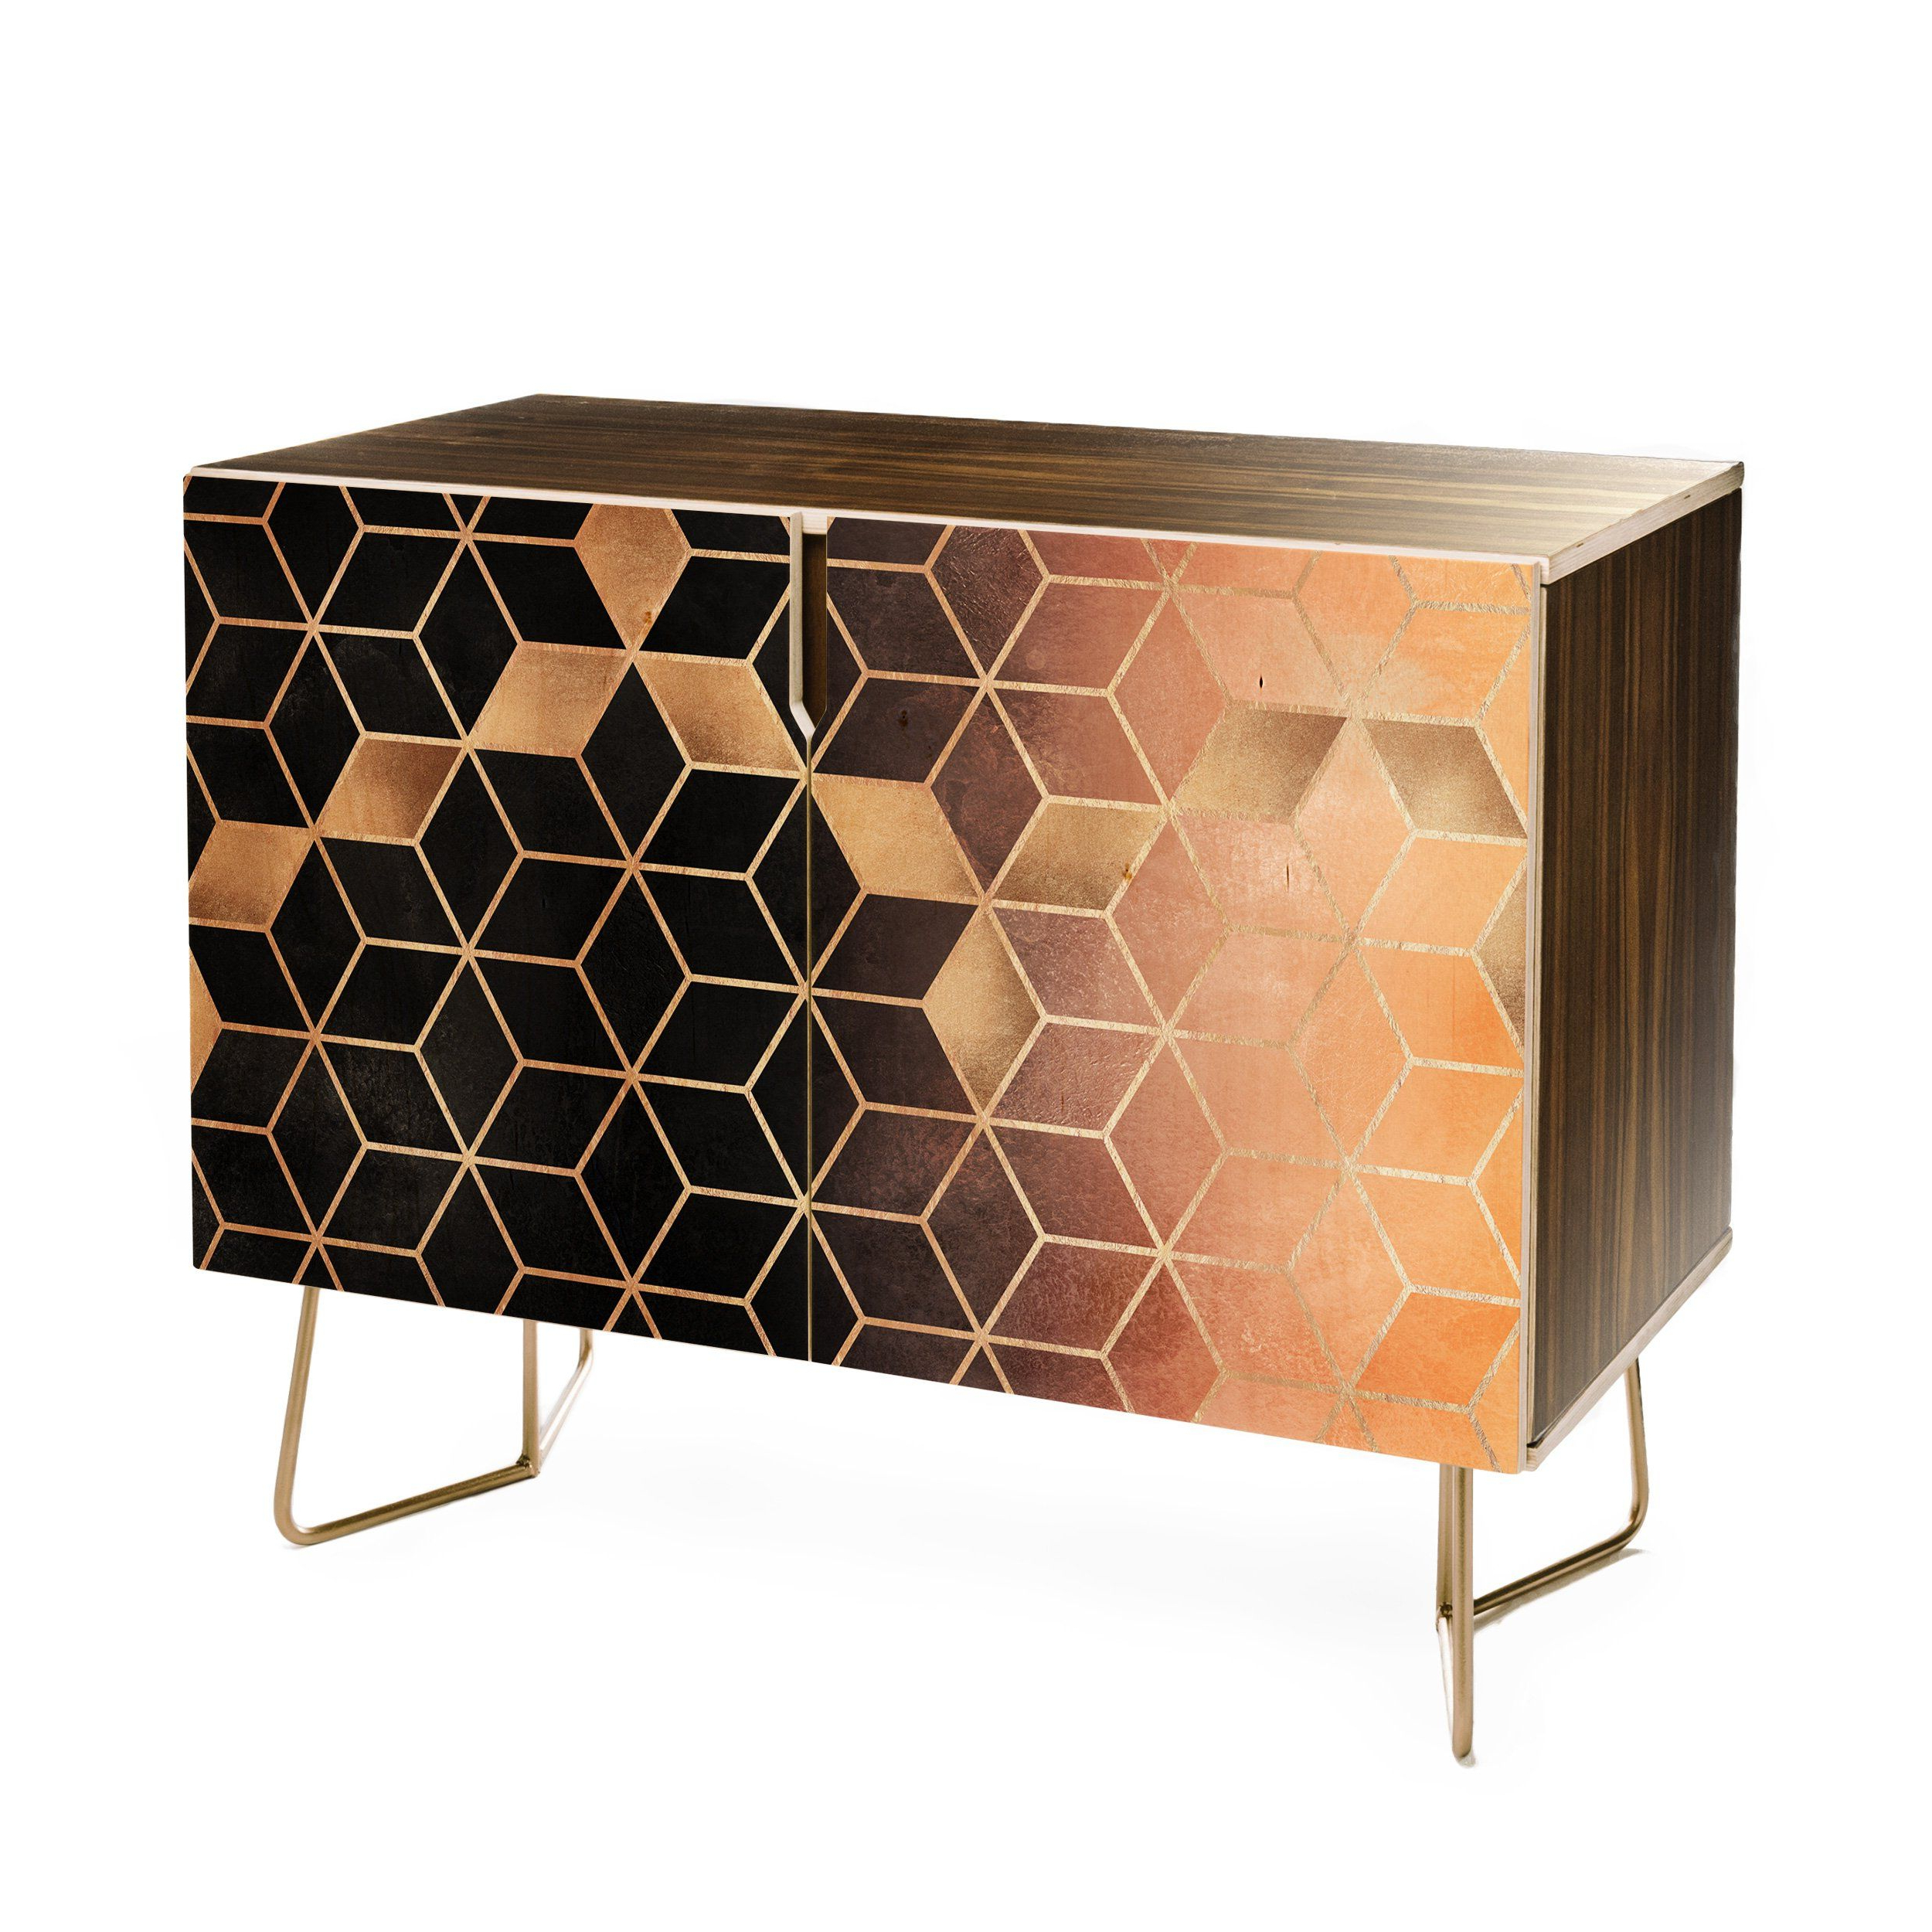 Elisabeth Fredriksson Ombre Cubes Credenza In 2019 Inside Blue Hexagons And Diamonds Credenzas (View 17 of 20)